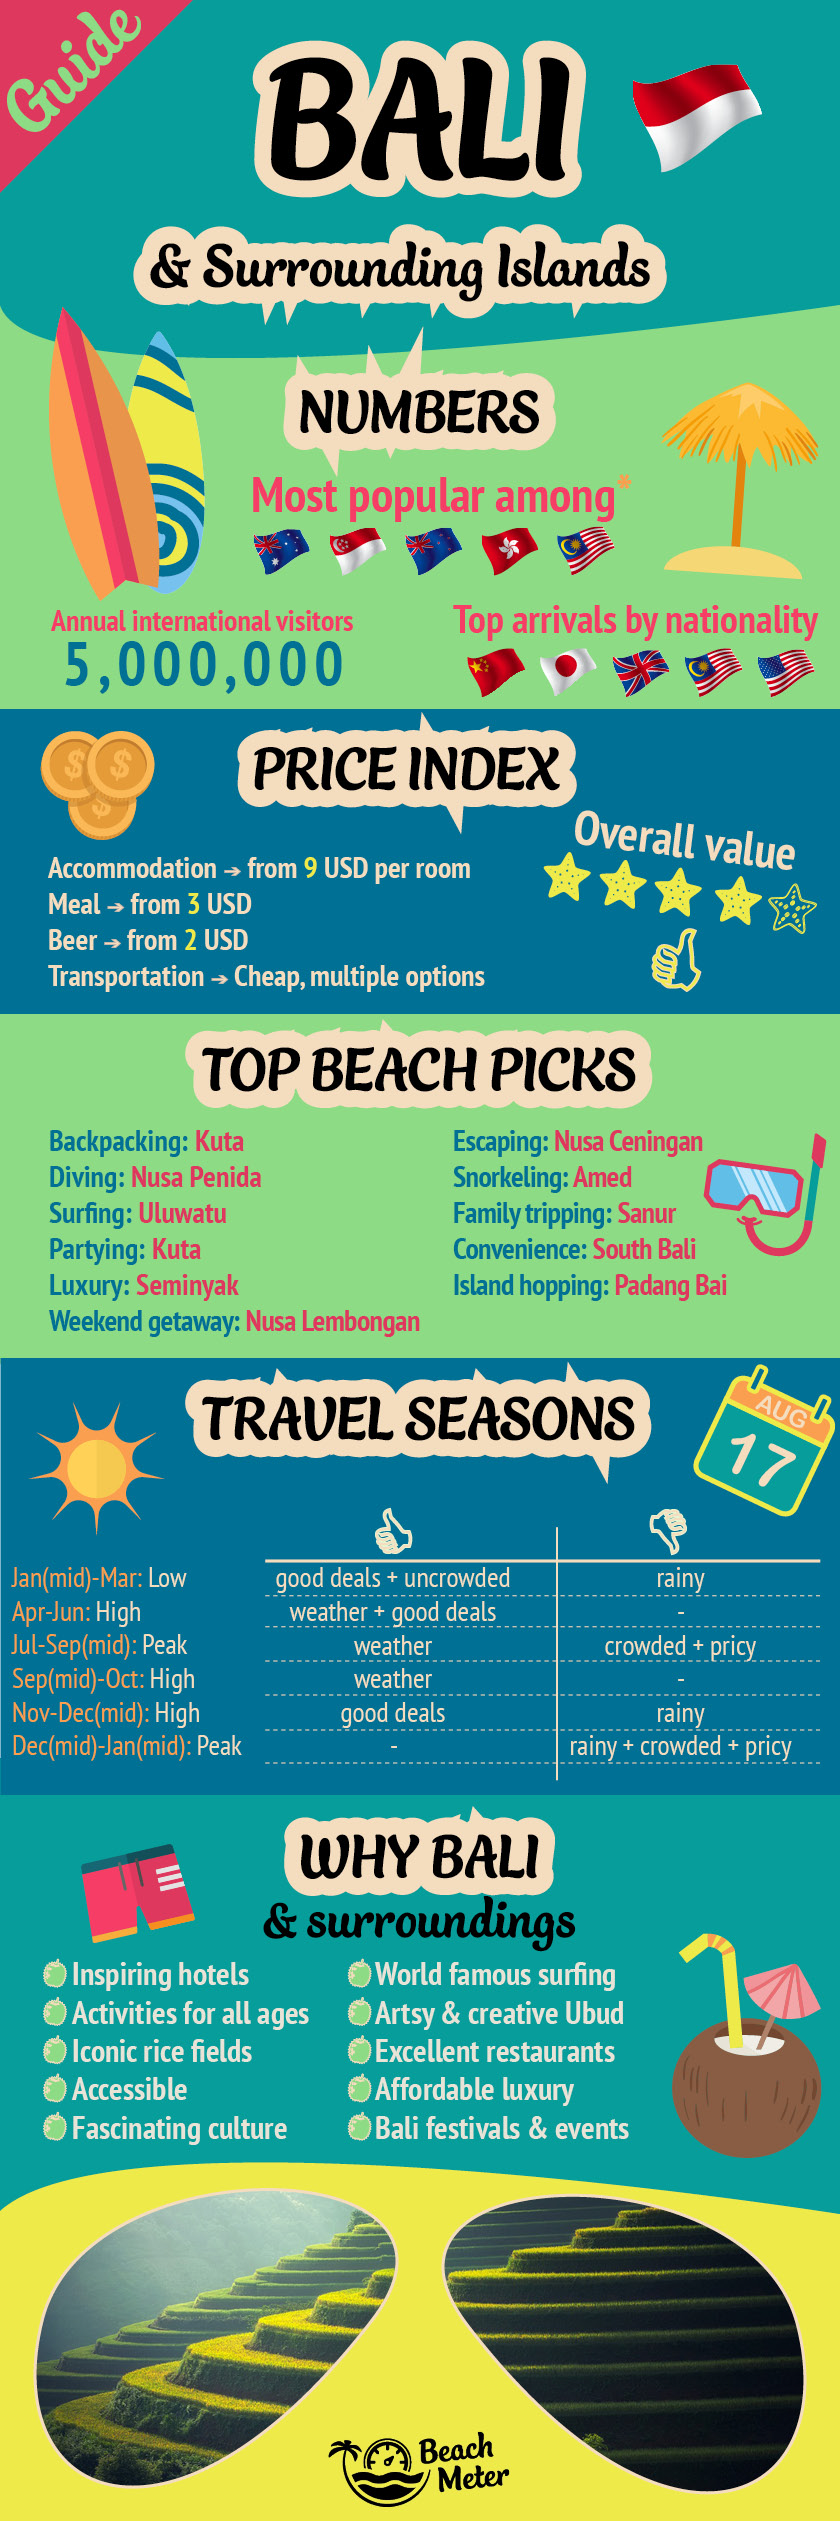 Bali travel guide and infographic with tourism stats to Bali, price index, top beaches, travel seasons, and unique selling points for Bali and surrounding islands. Made by Beachmeter.com.